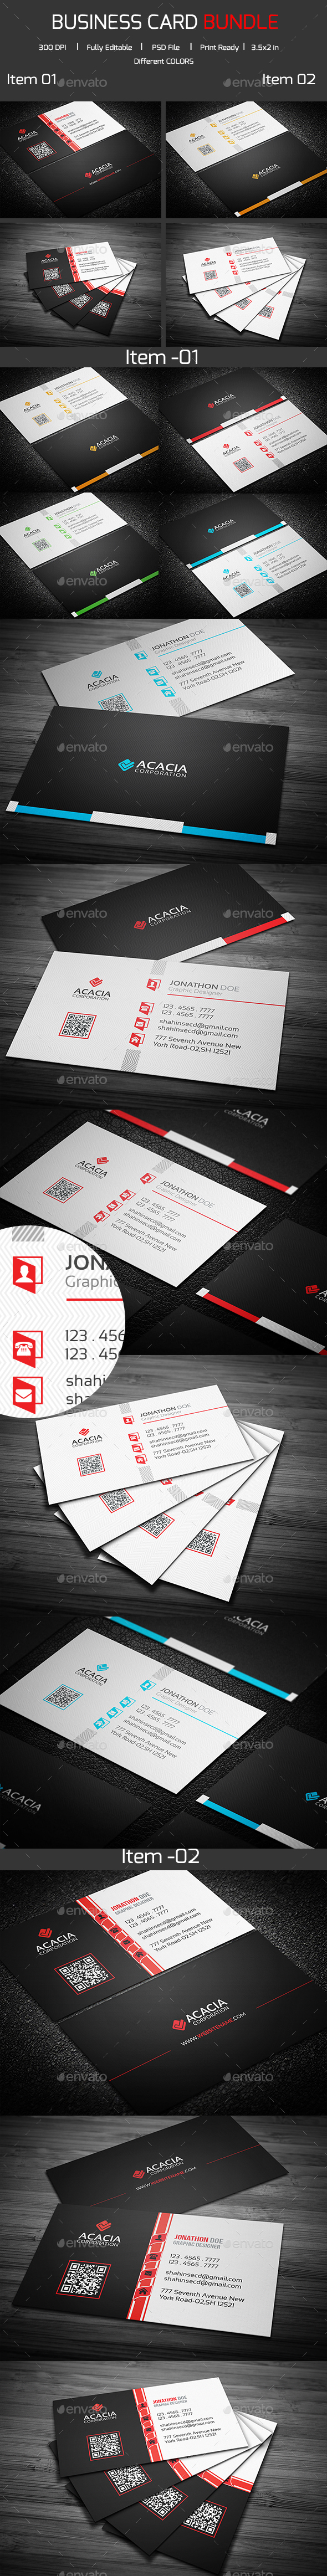 Bundle- 2 in 1 Business Card_05 - Corporate Business Cards